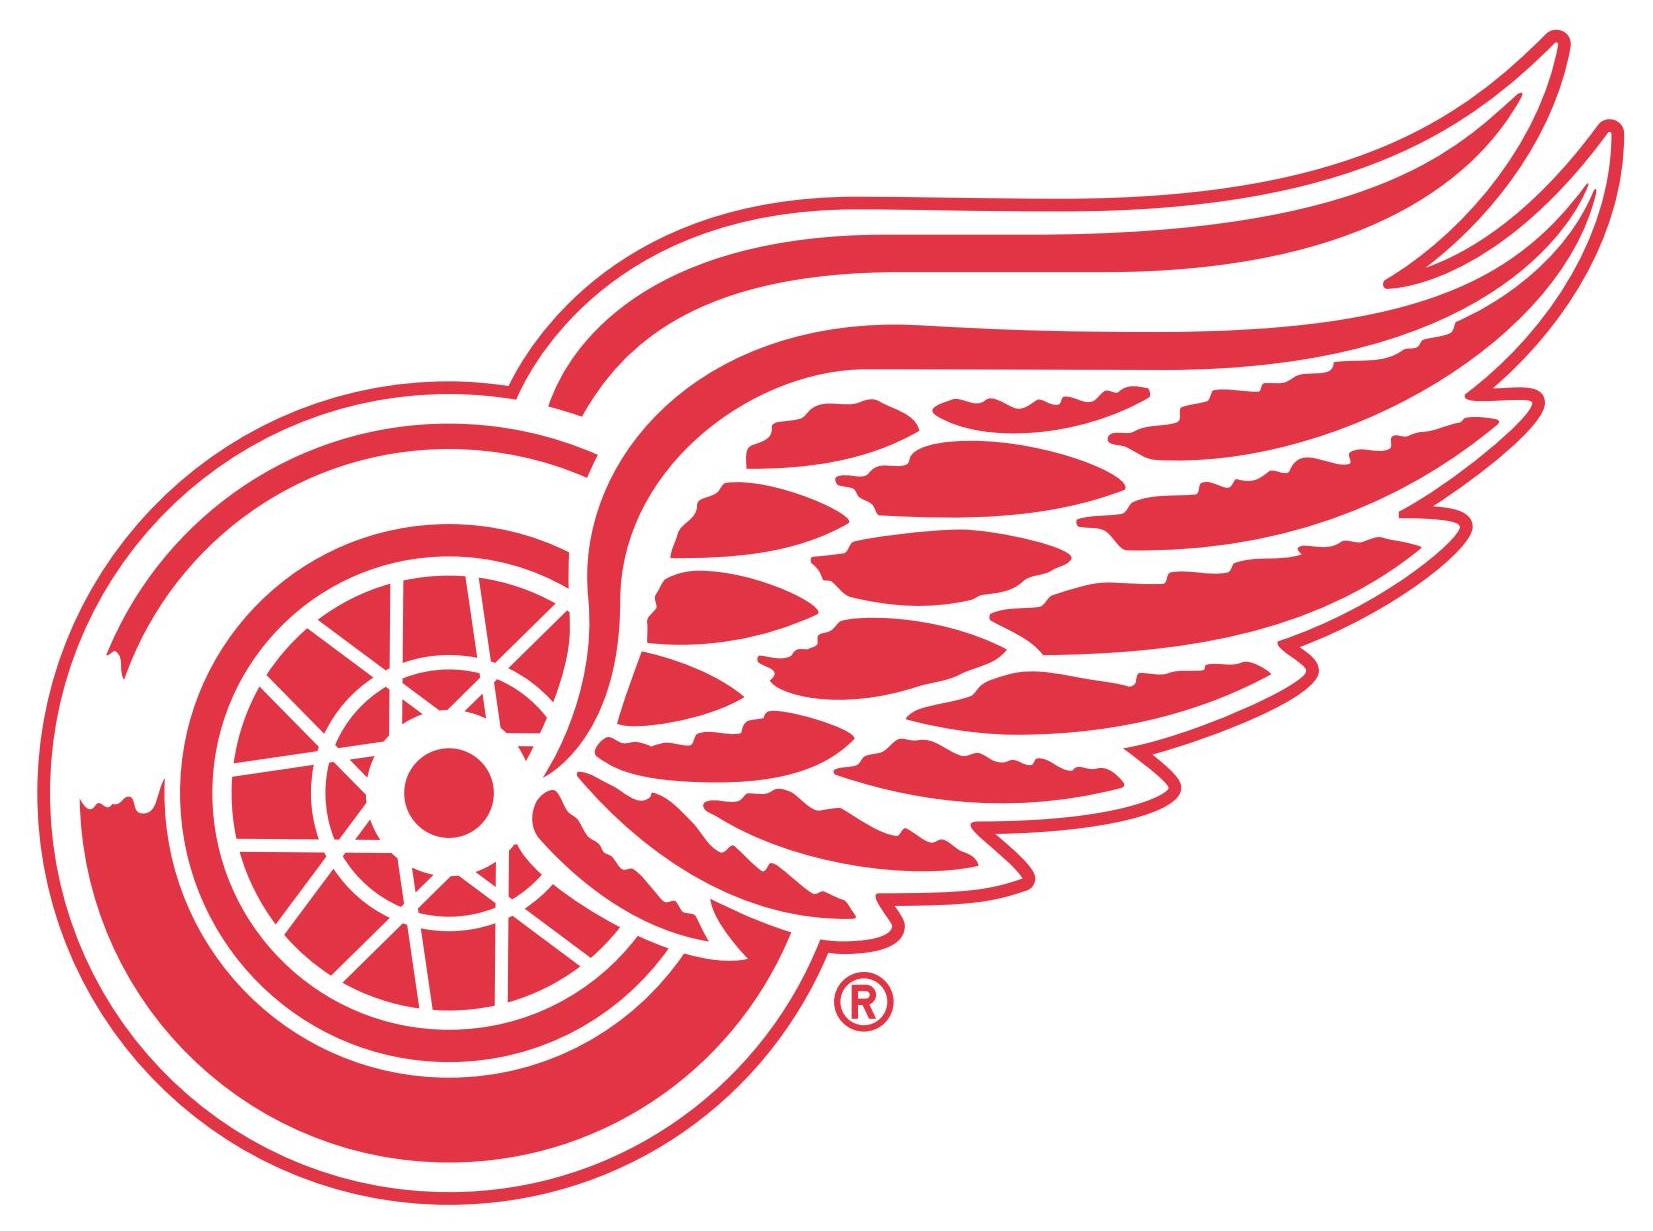 Detroit Red Wings Clipart.